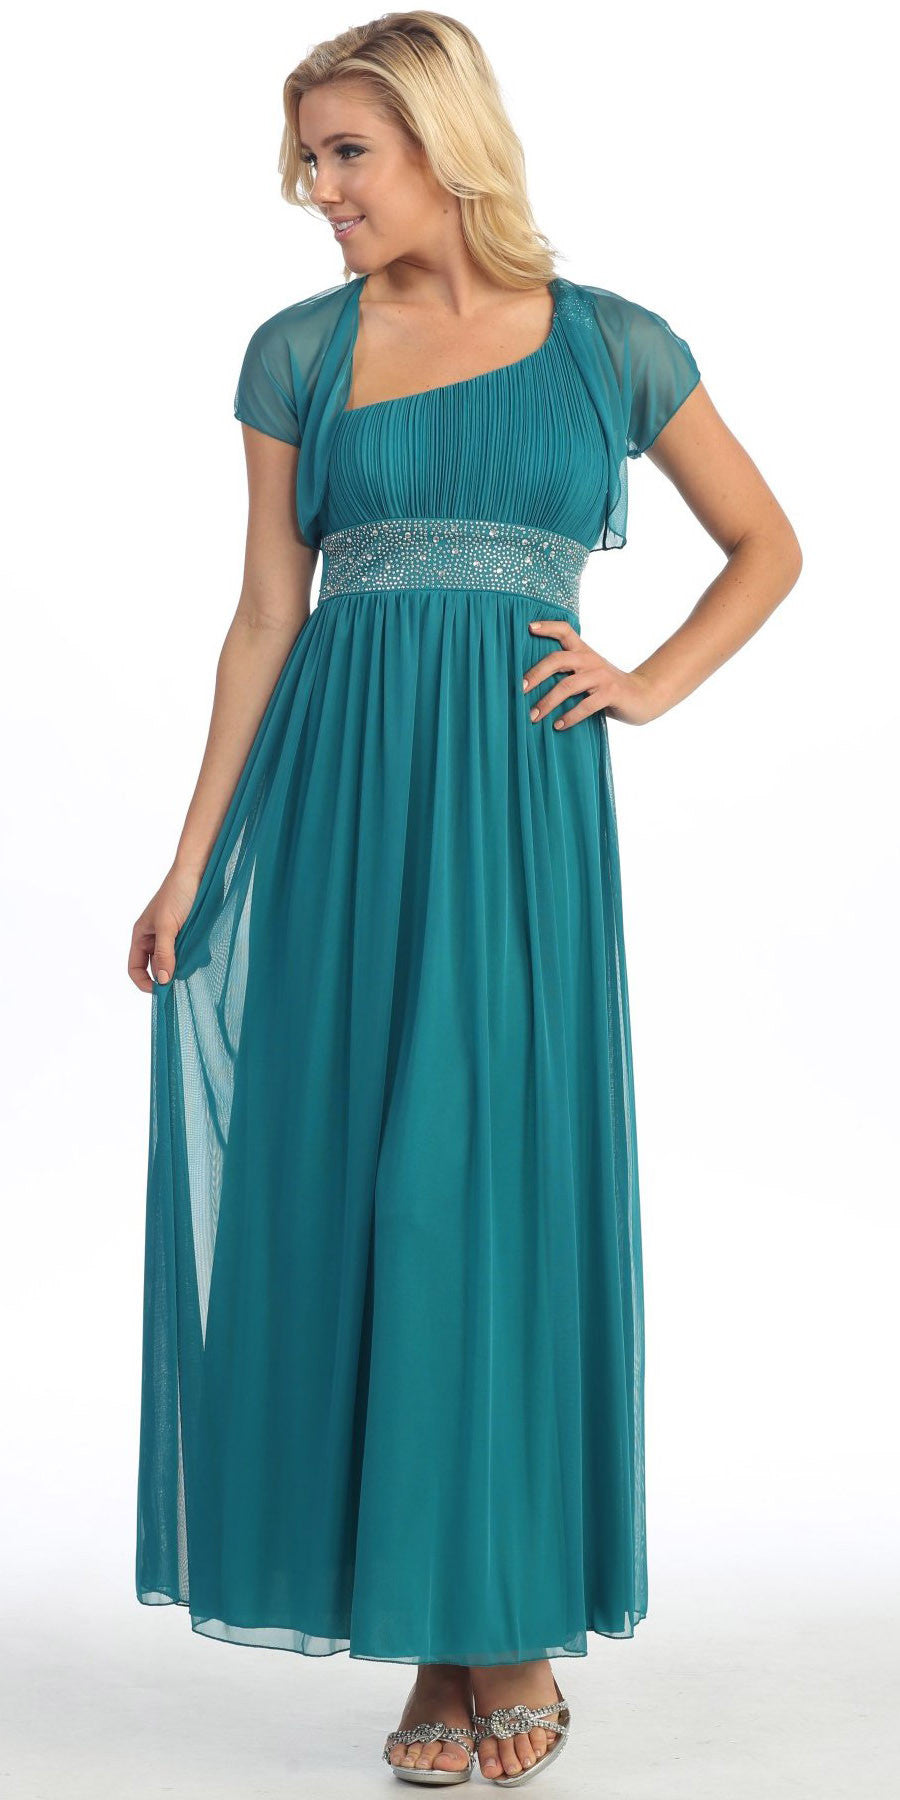 Long Teal One Shoulder Evening Gown Chiffon Empire Waist Rhinestone